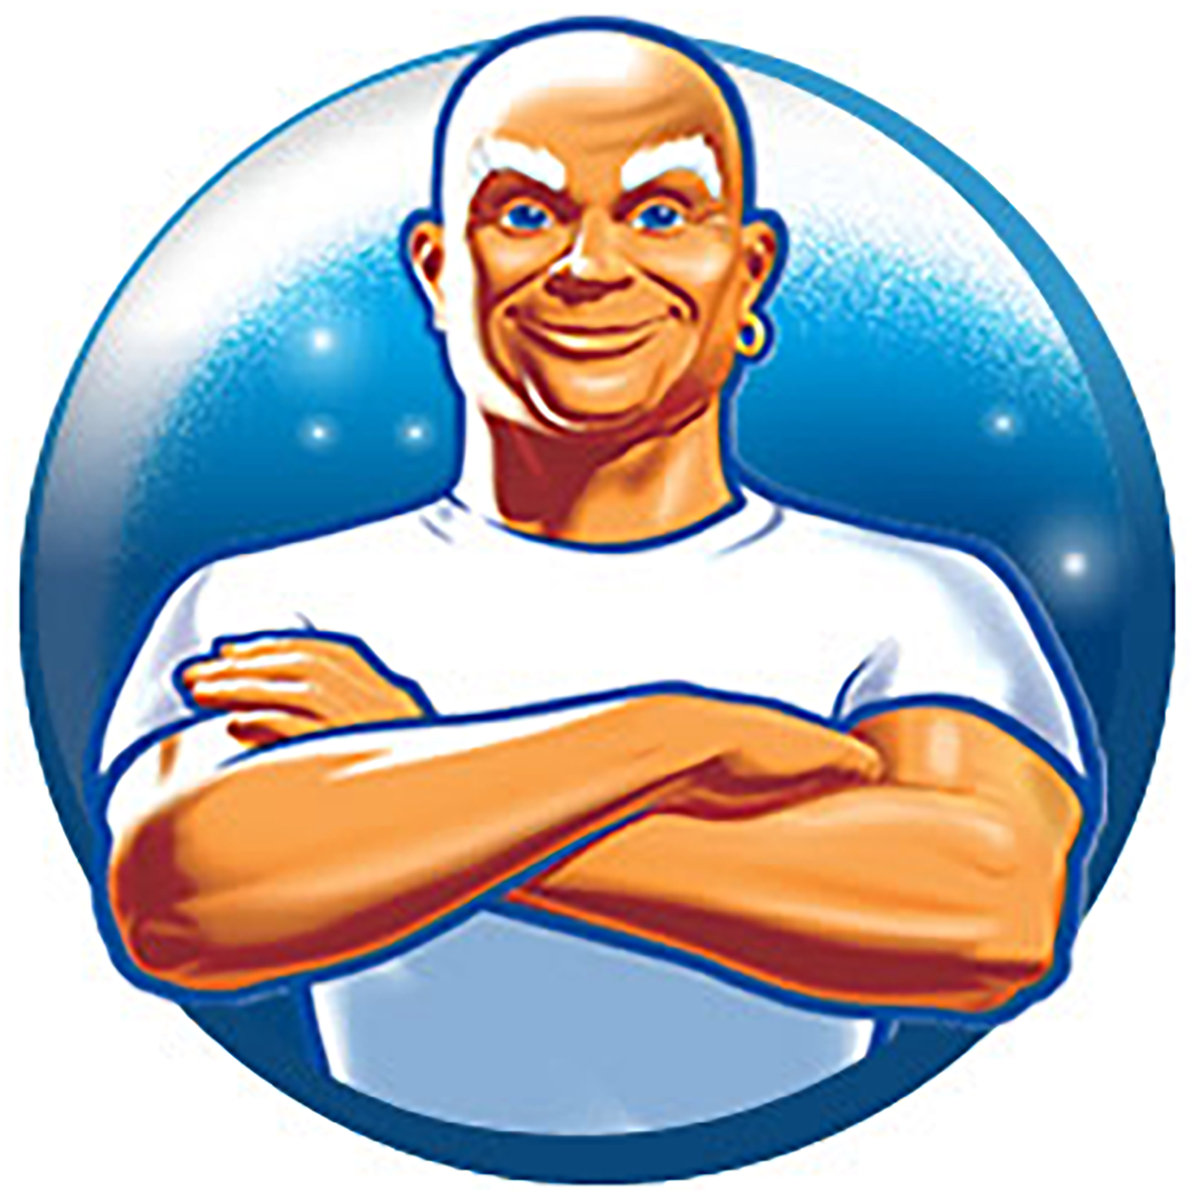 Mr clean logo clipart image free Mr. Clean | Lil Homie image free